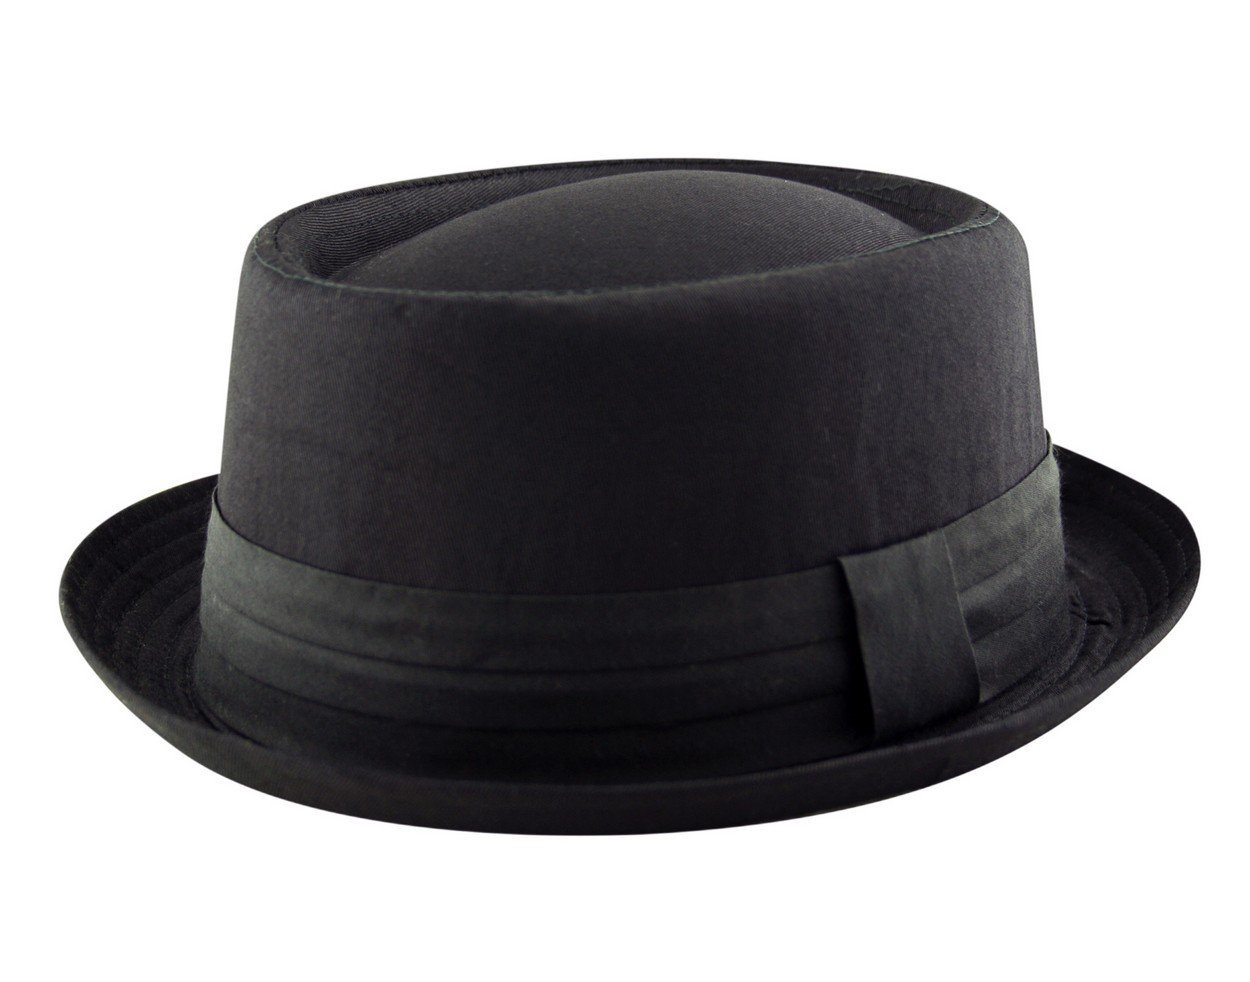 Adult Pork Pie Trilby Fedora 100% Cotton Hat Band Unisex (Breaking Bad Heisenberg Style) in Black